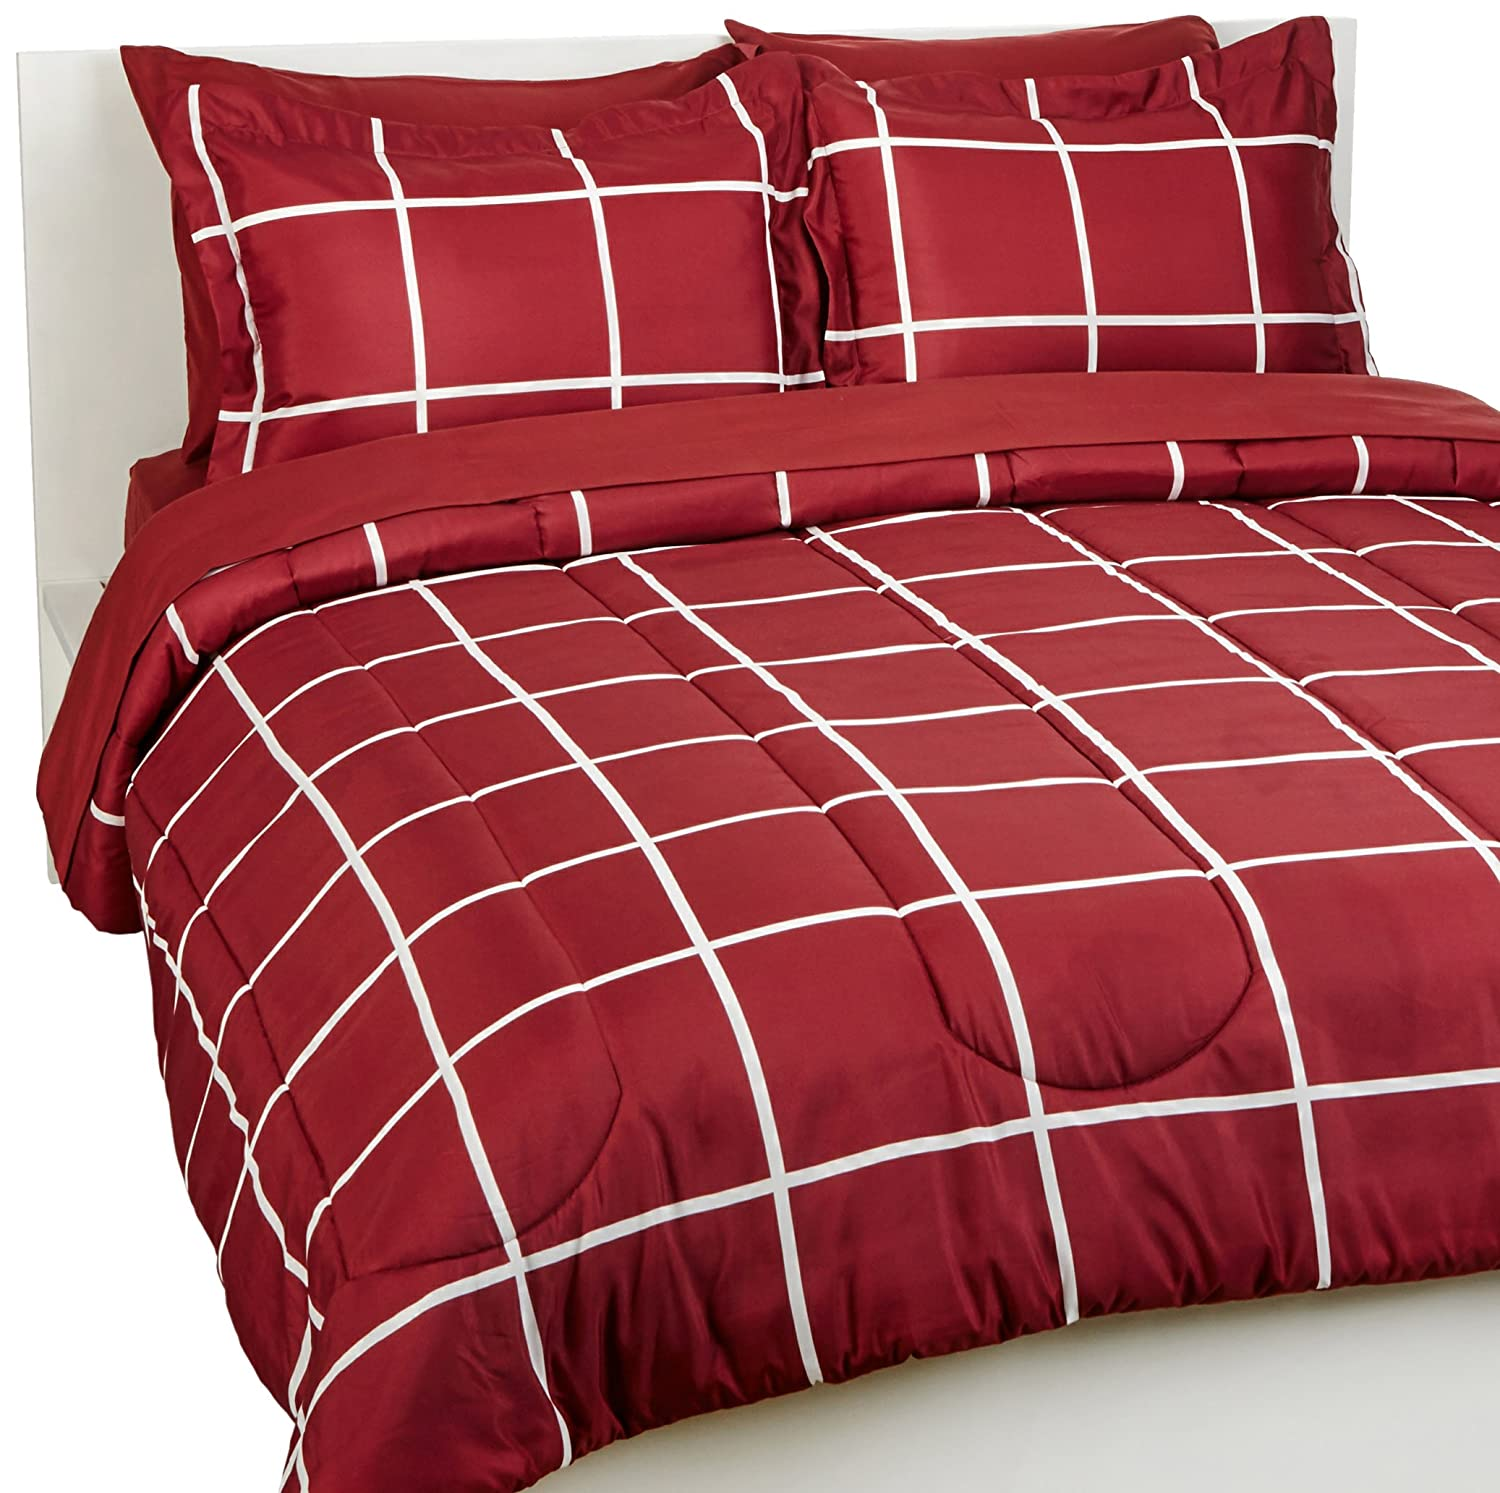 Queen Bedding Comforter Sheet Set, Burgundy Simple Plaid, Microfiber, Ultra-Soft